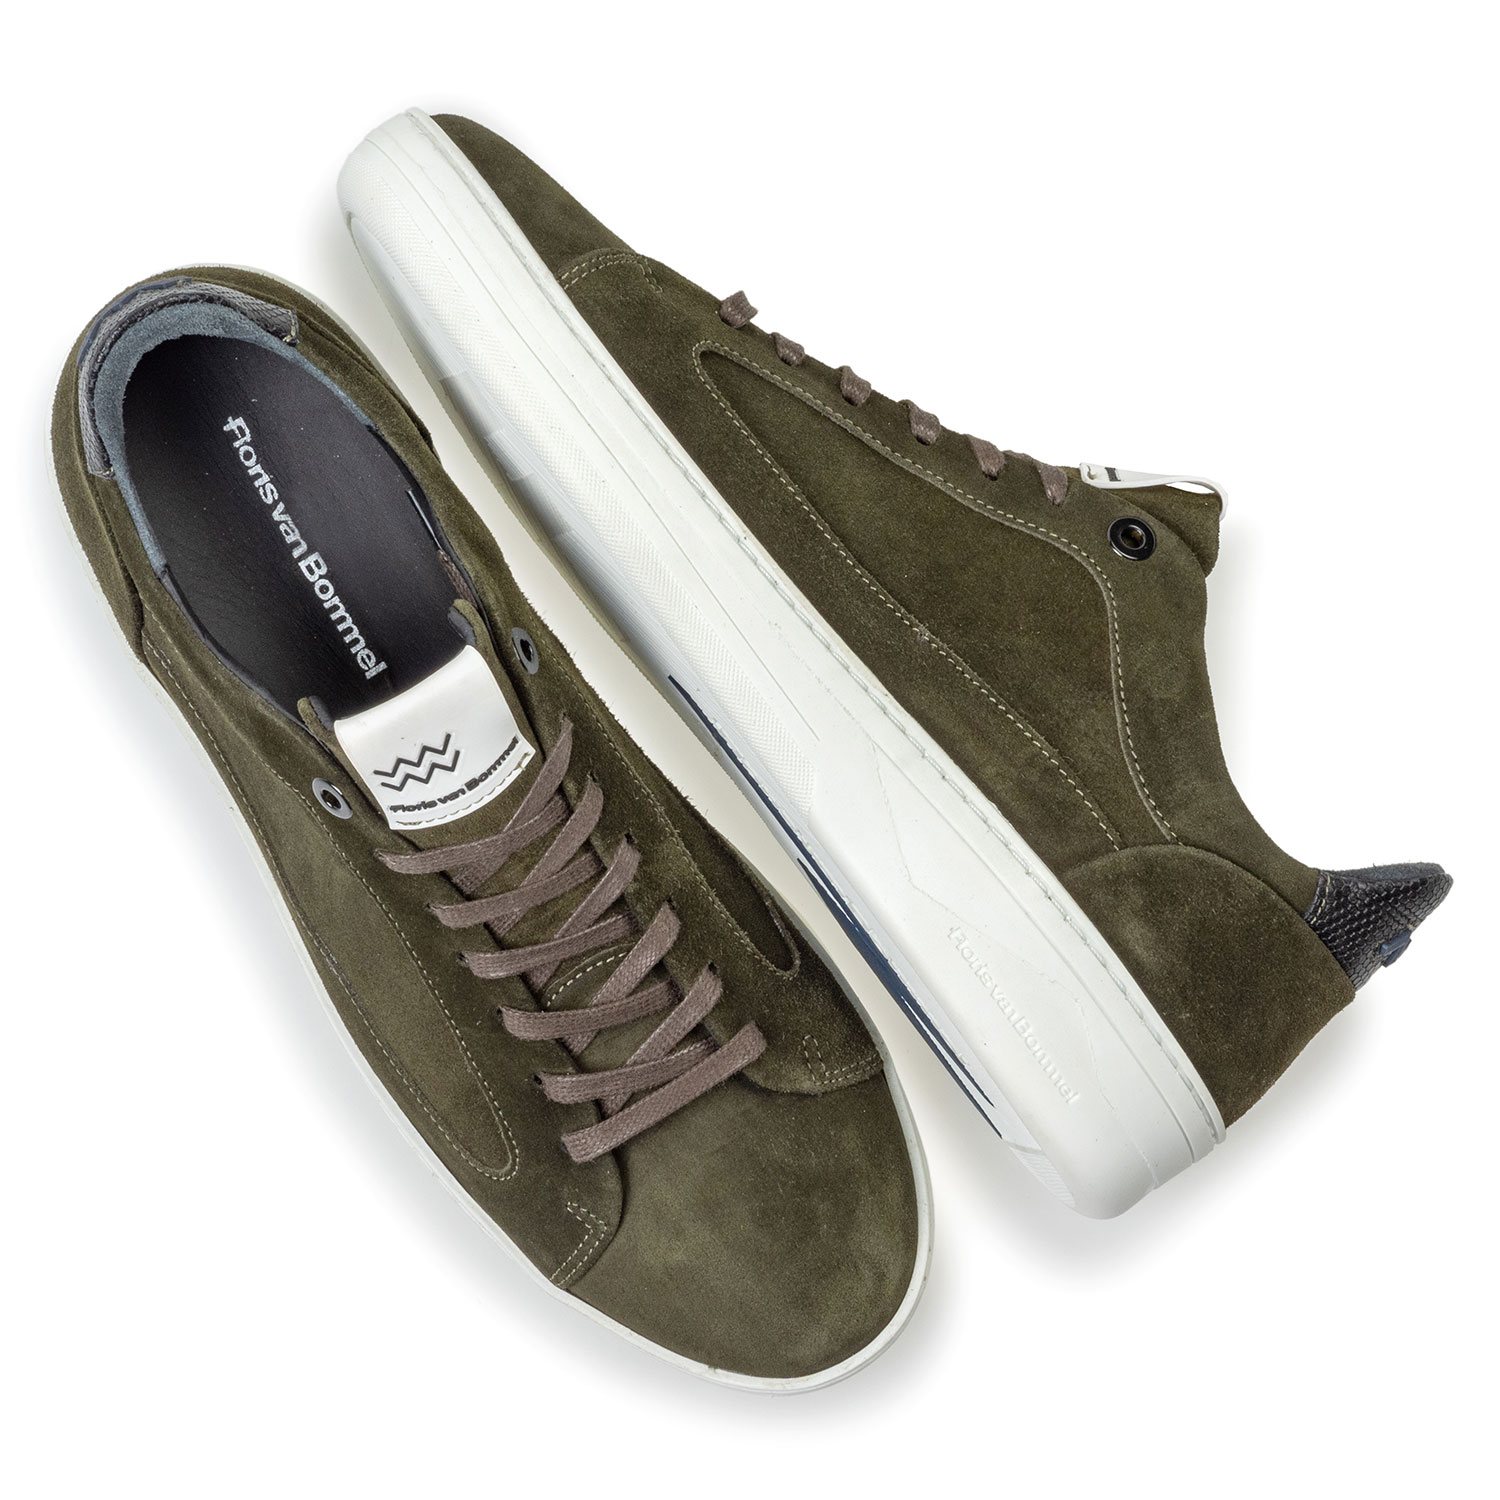 13265/30 - Sneaker suede leather green